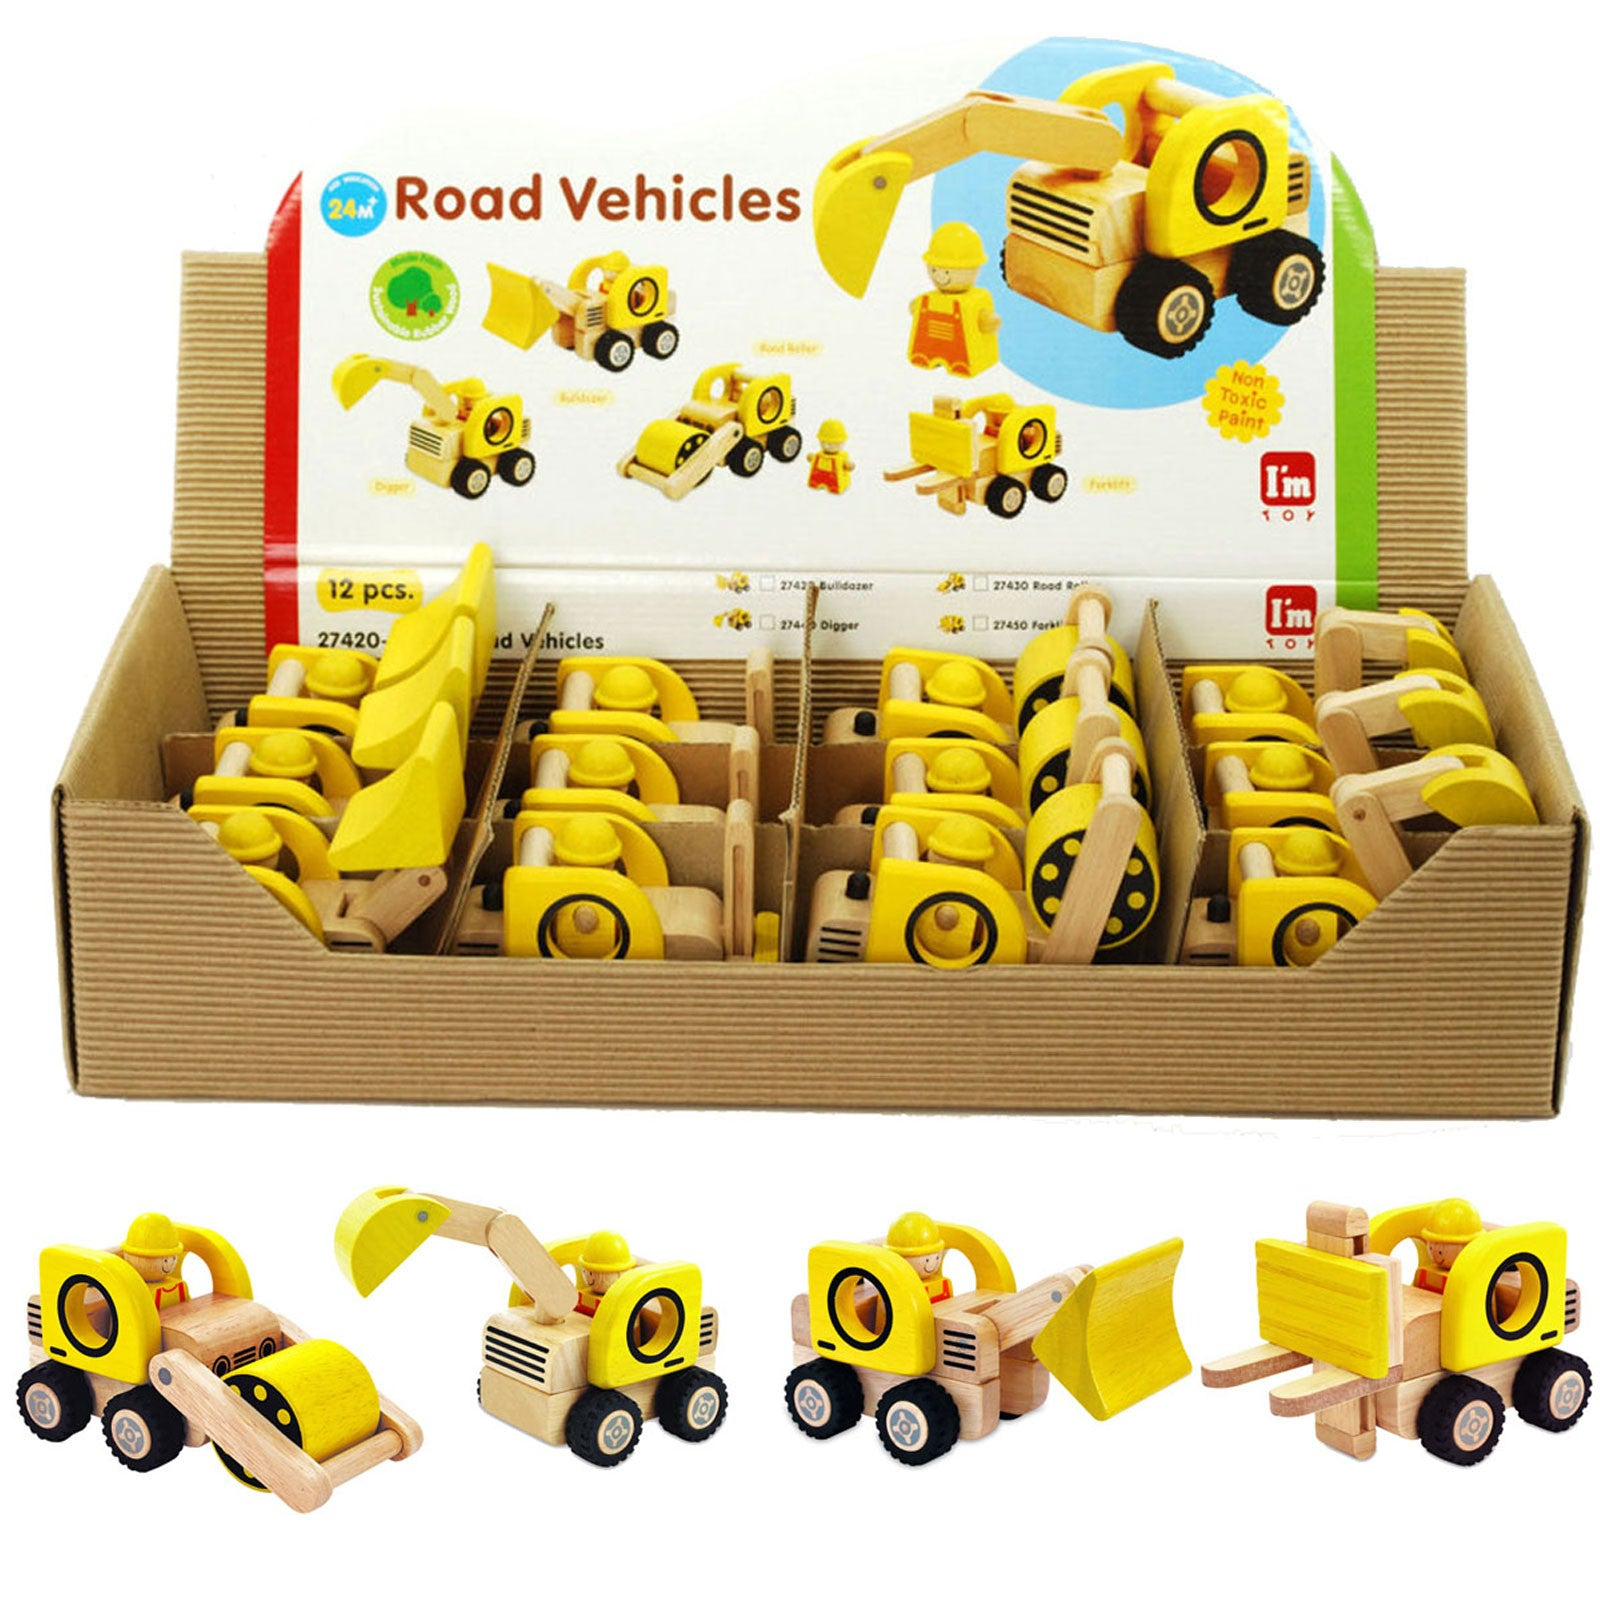 I'm Toy Road Vehicles Im Toy Play Vehicles at Little Earth Nest Eco Shop